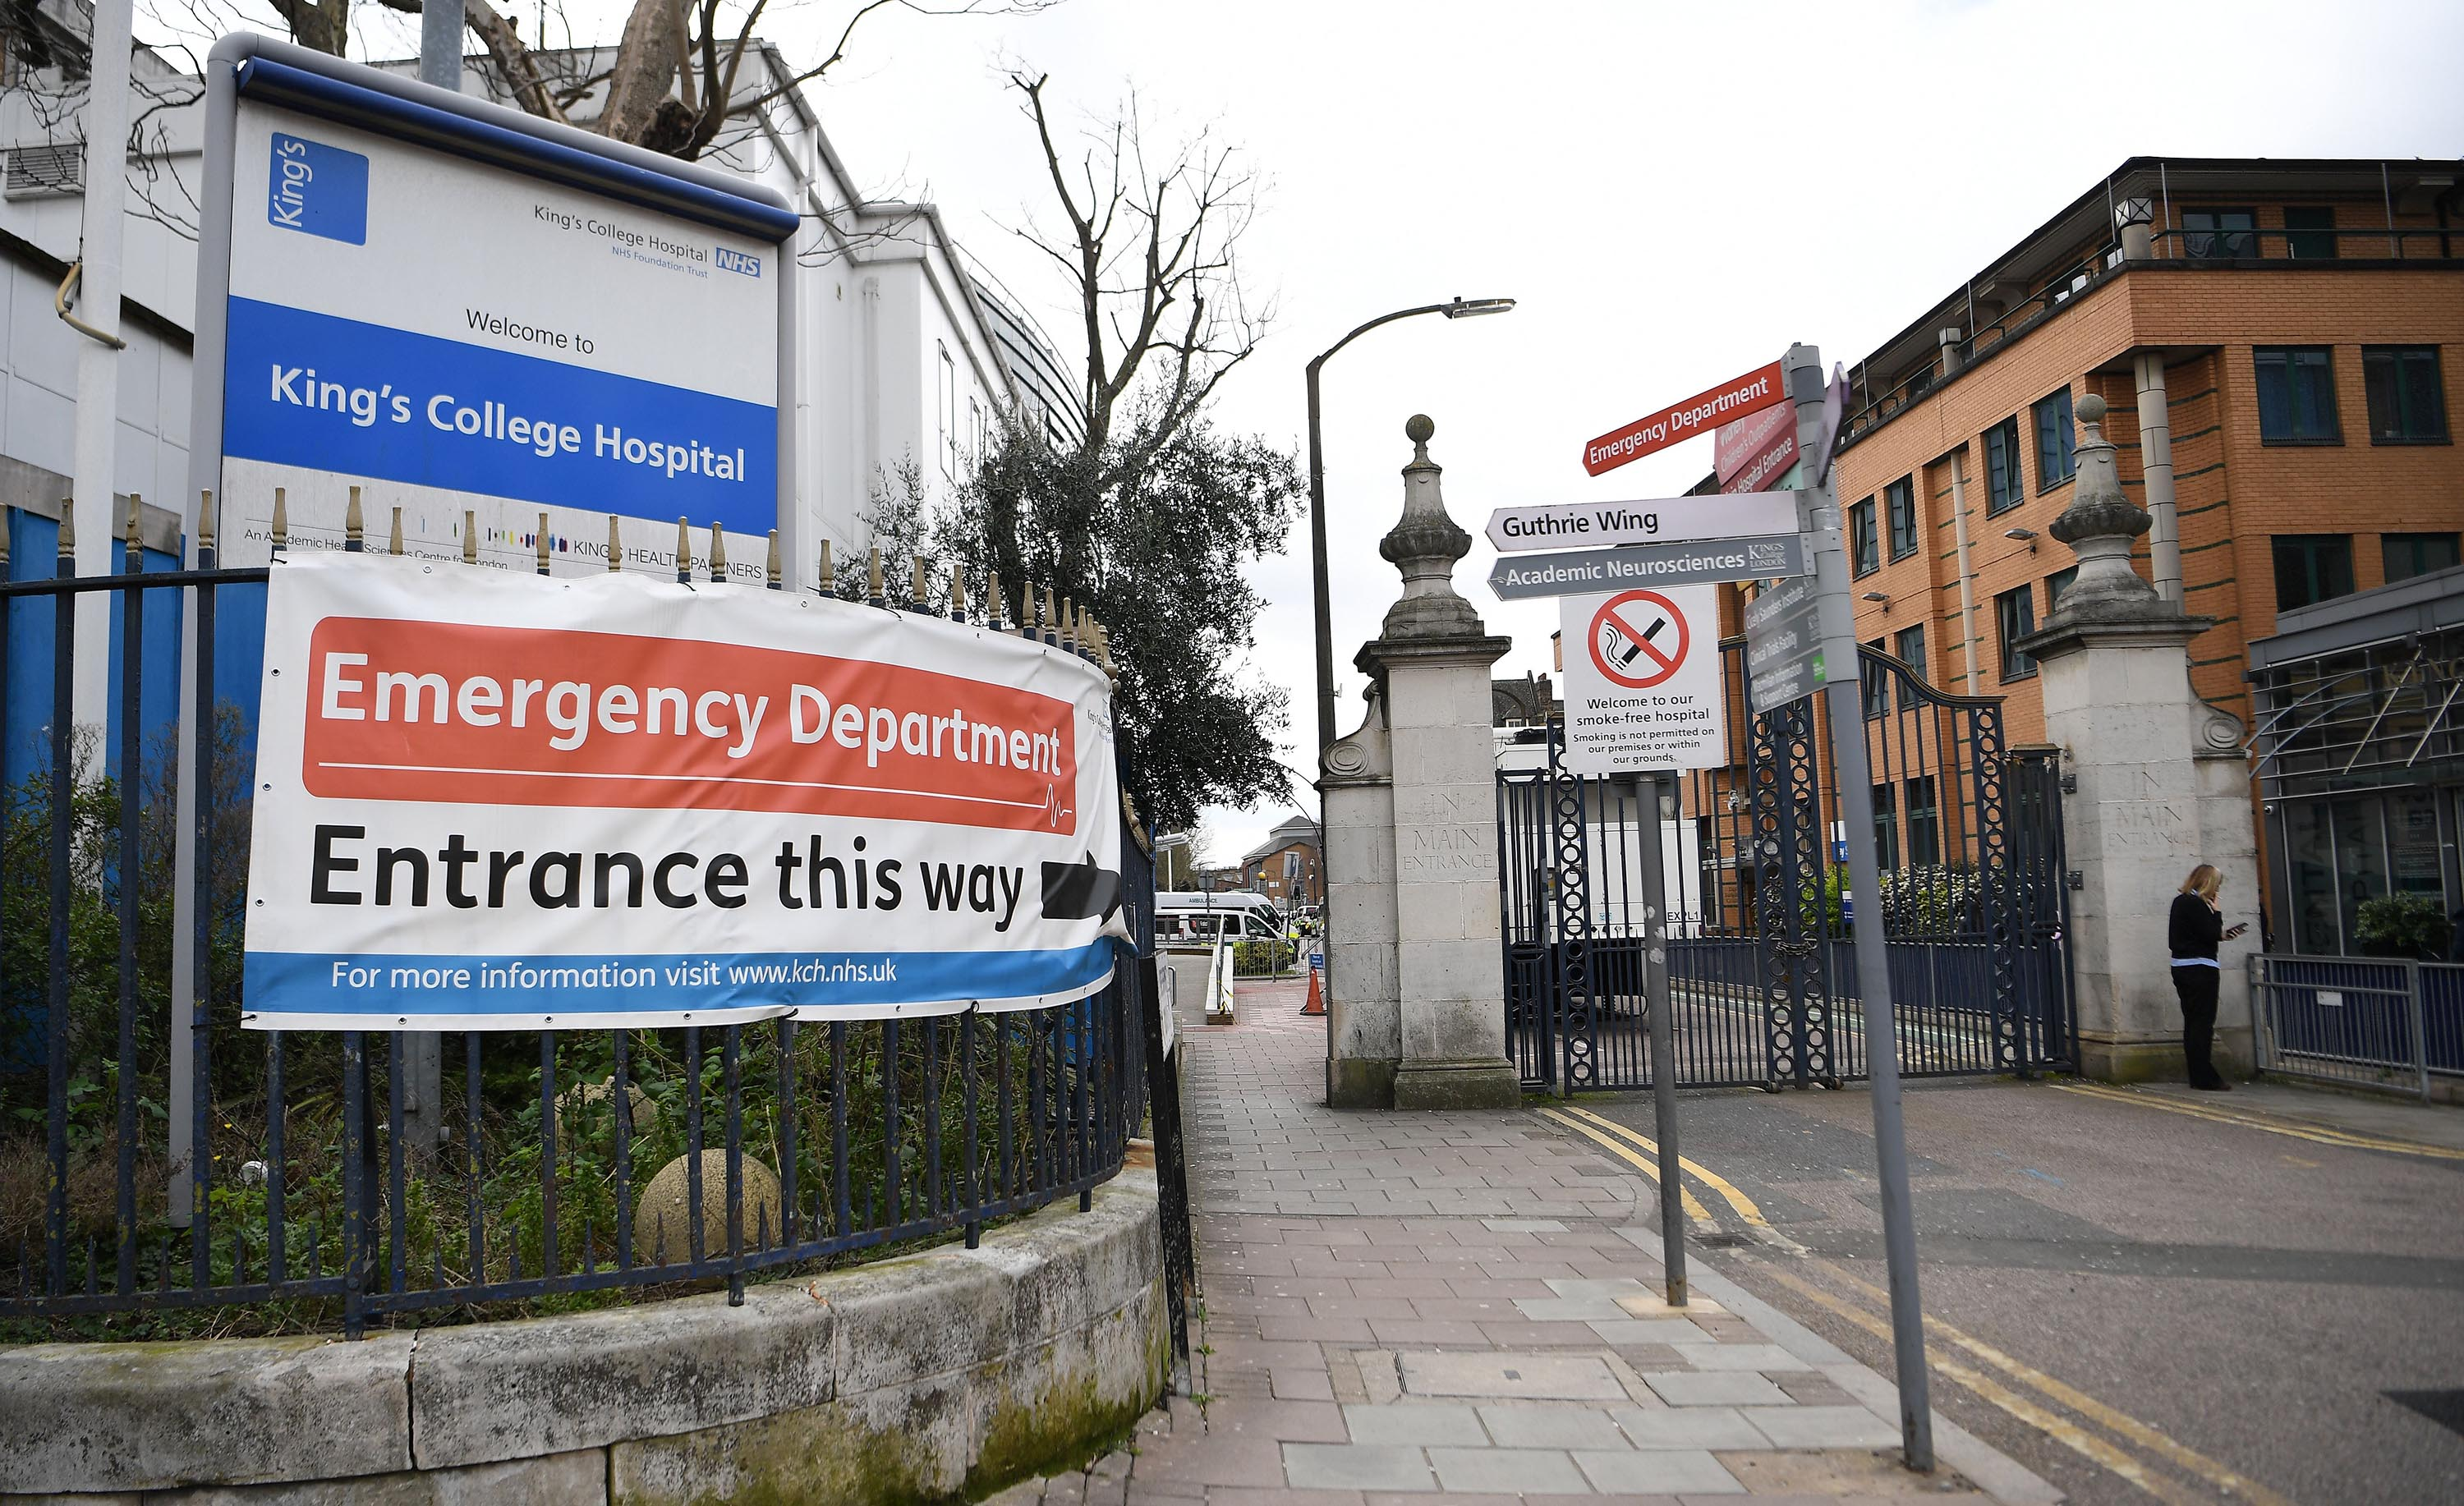 A view of the NHS Emergency Department entrance at Kings College hospital in London, on March 18.